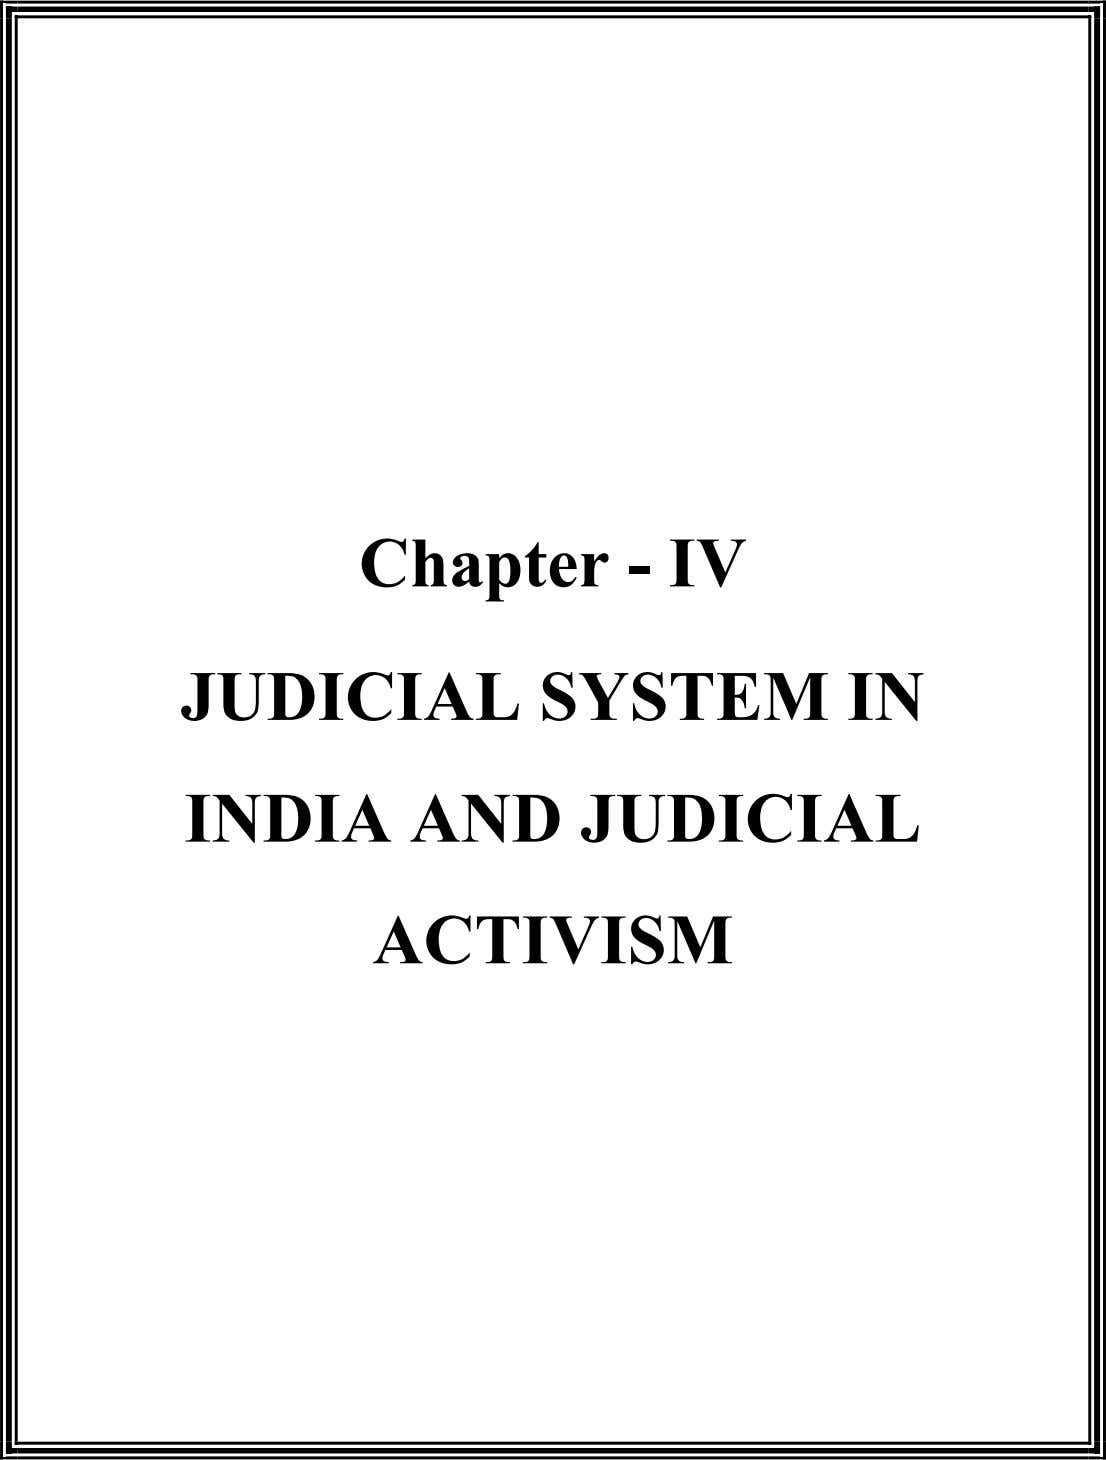 Chapter - IV JUDICIAL SYSTEM IN INDIA AND JUDICIAL ACTIVISM